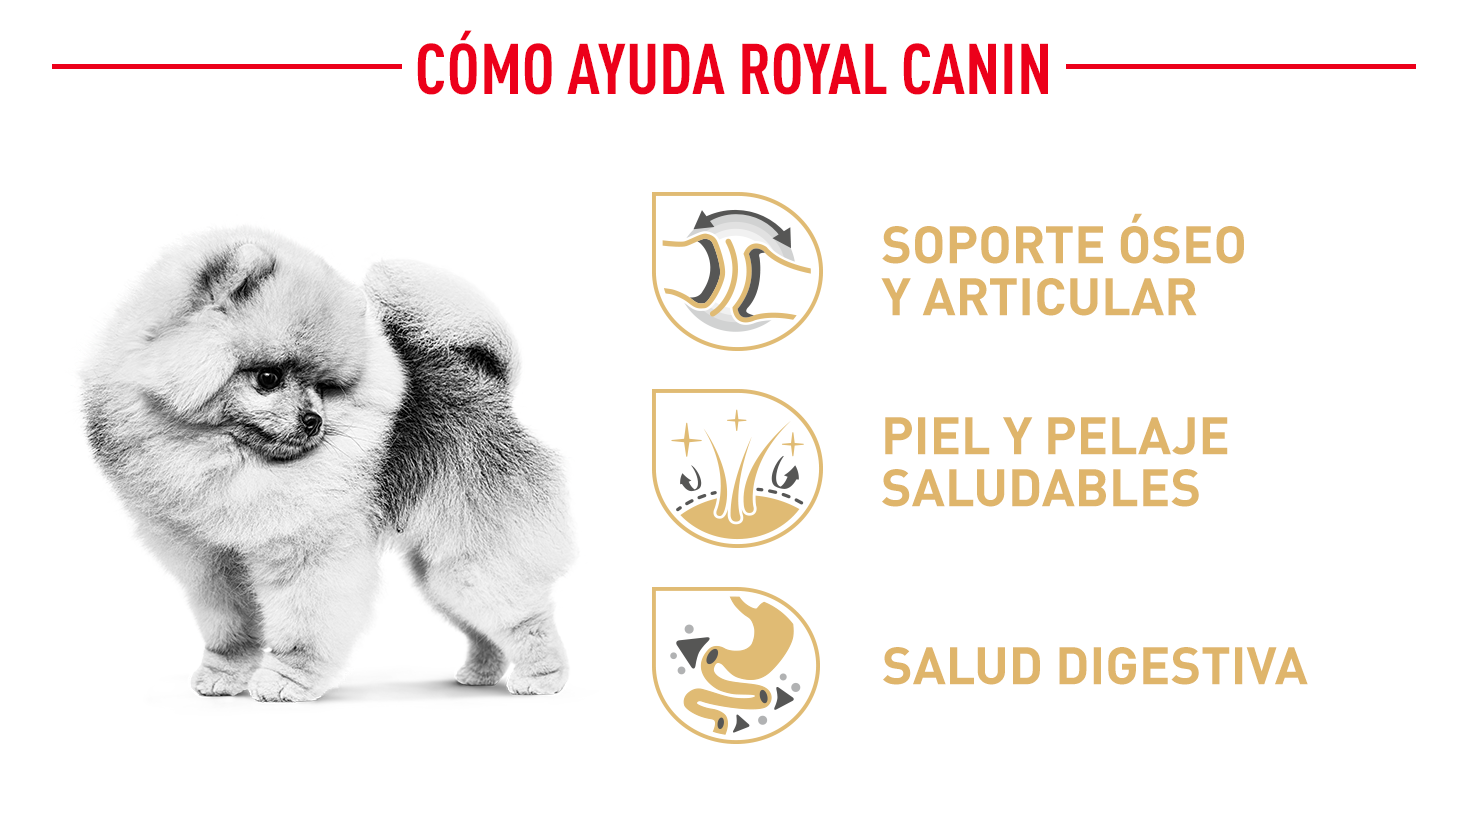 Beneficios de Royal Canin Pomerania